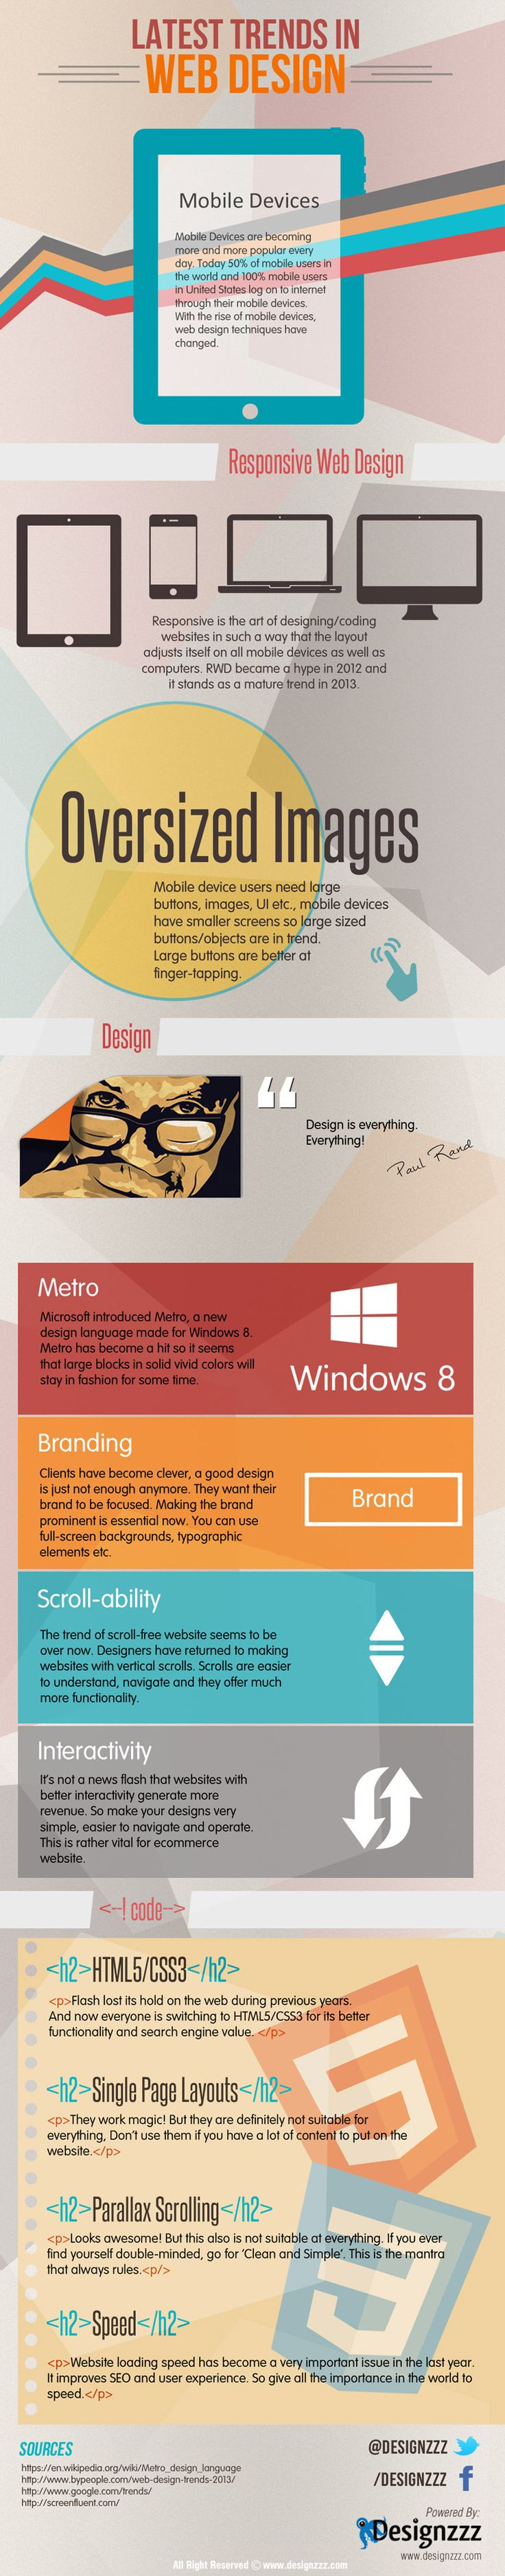 Latest Trends in #WebDesign